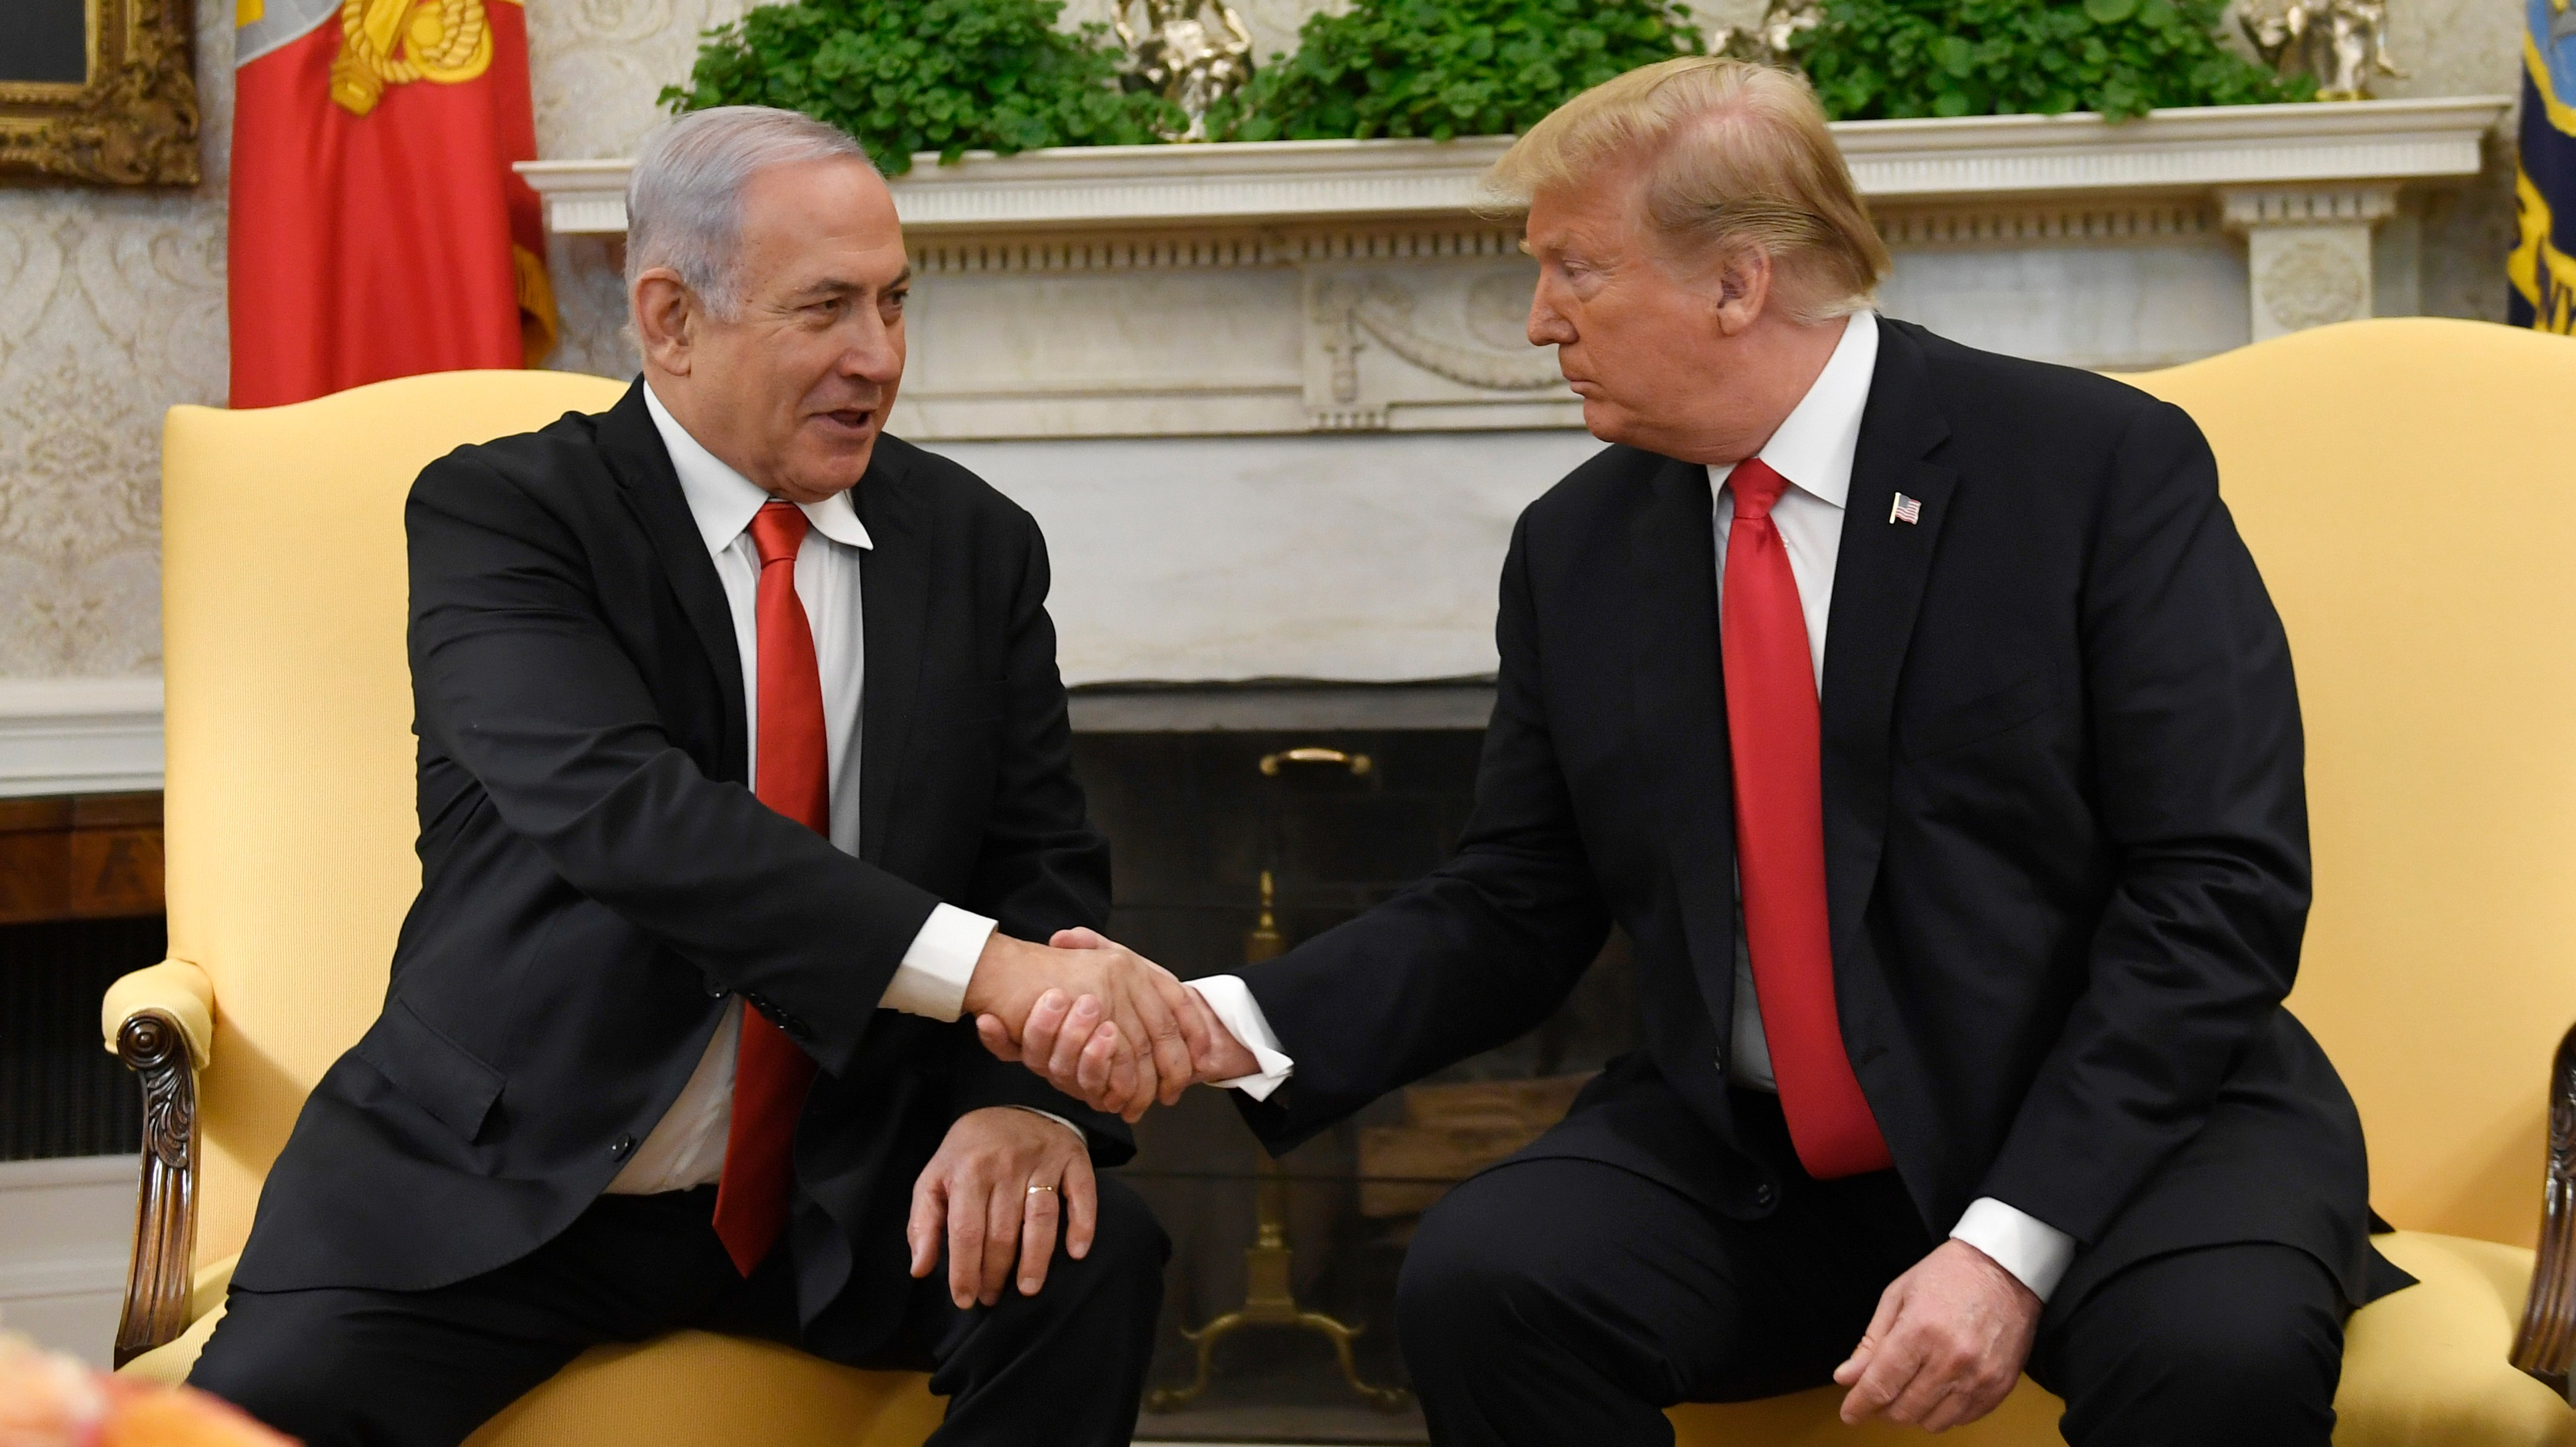 Trump and Israel Team Up to Cool Tensions With Iran